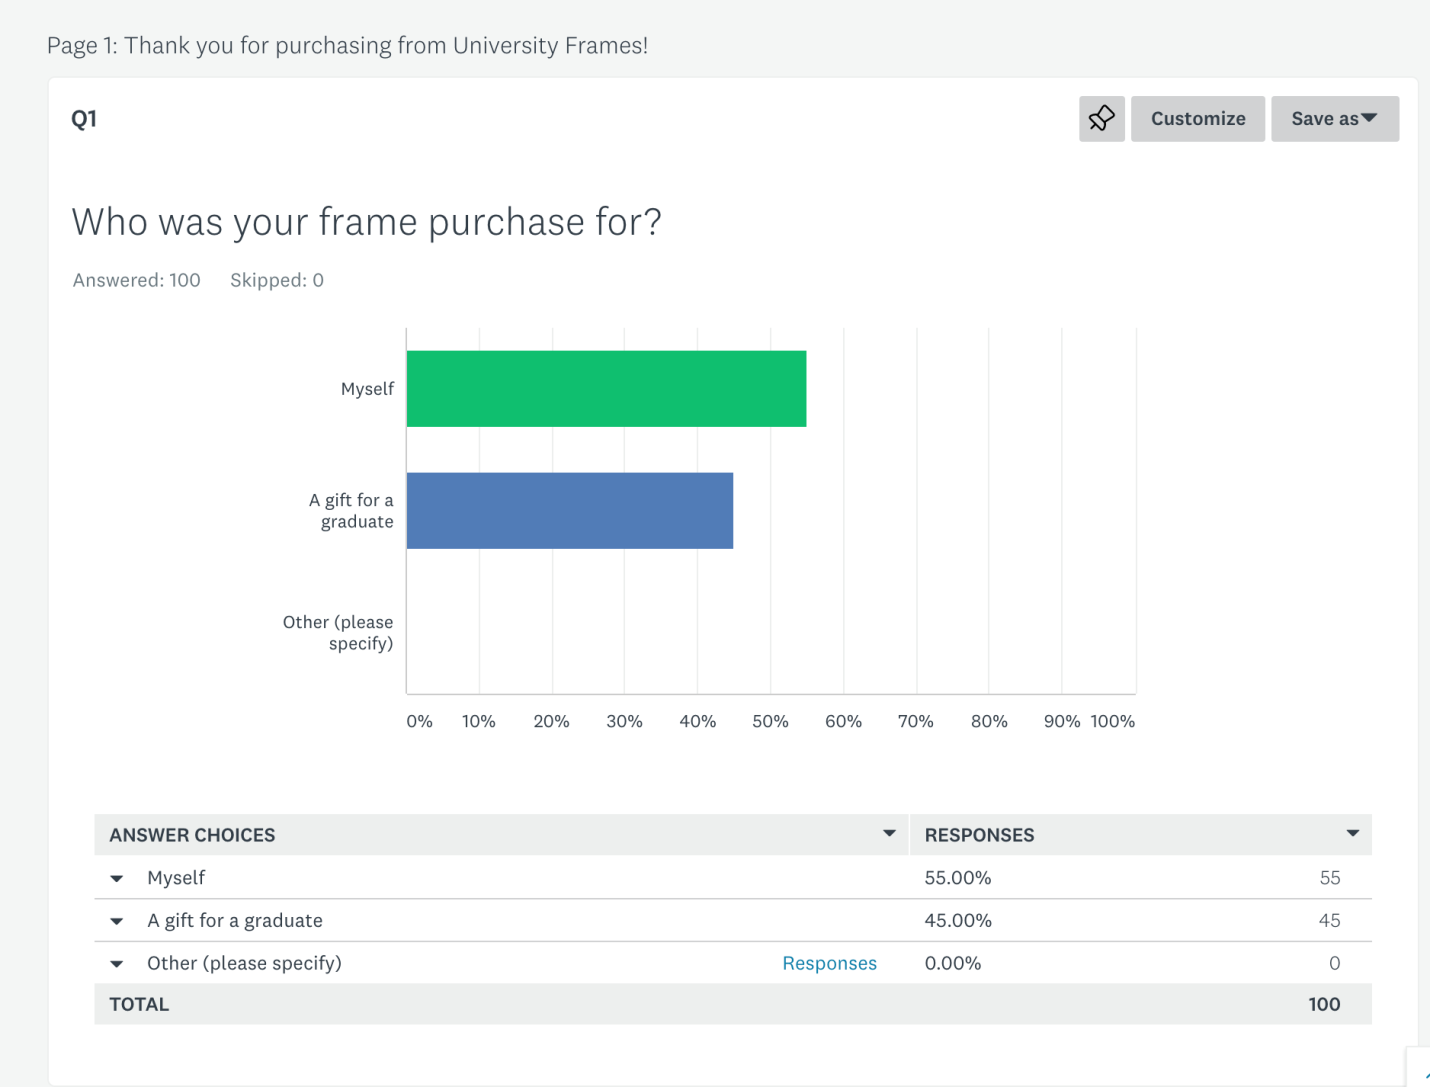 who-was-your-frame-purchase-for